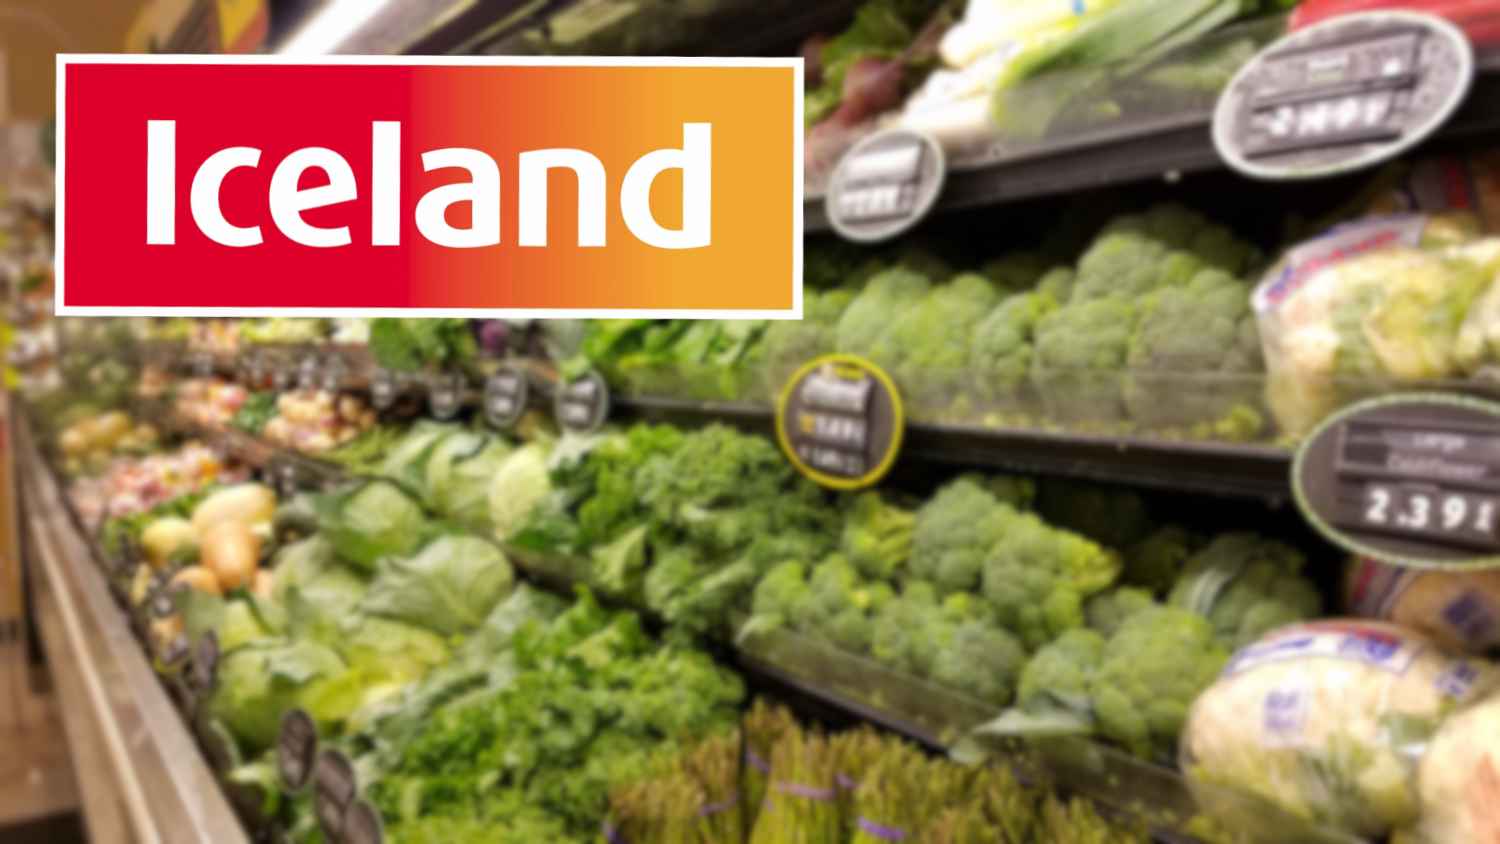 Iceland Will Be World's First Plastic-Free Supermarket By 2023